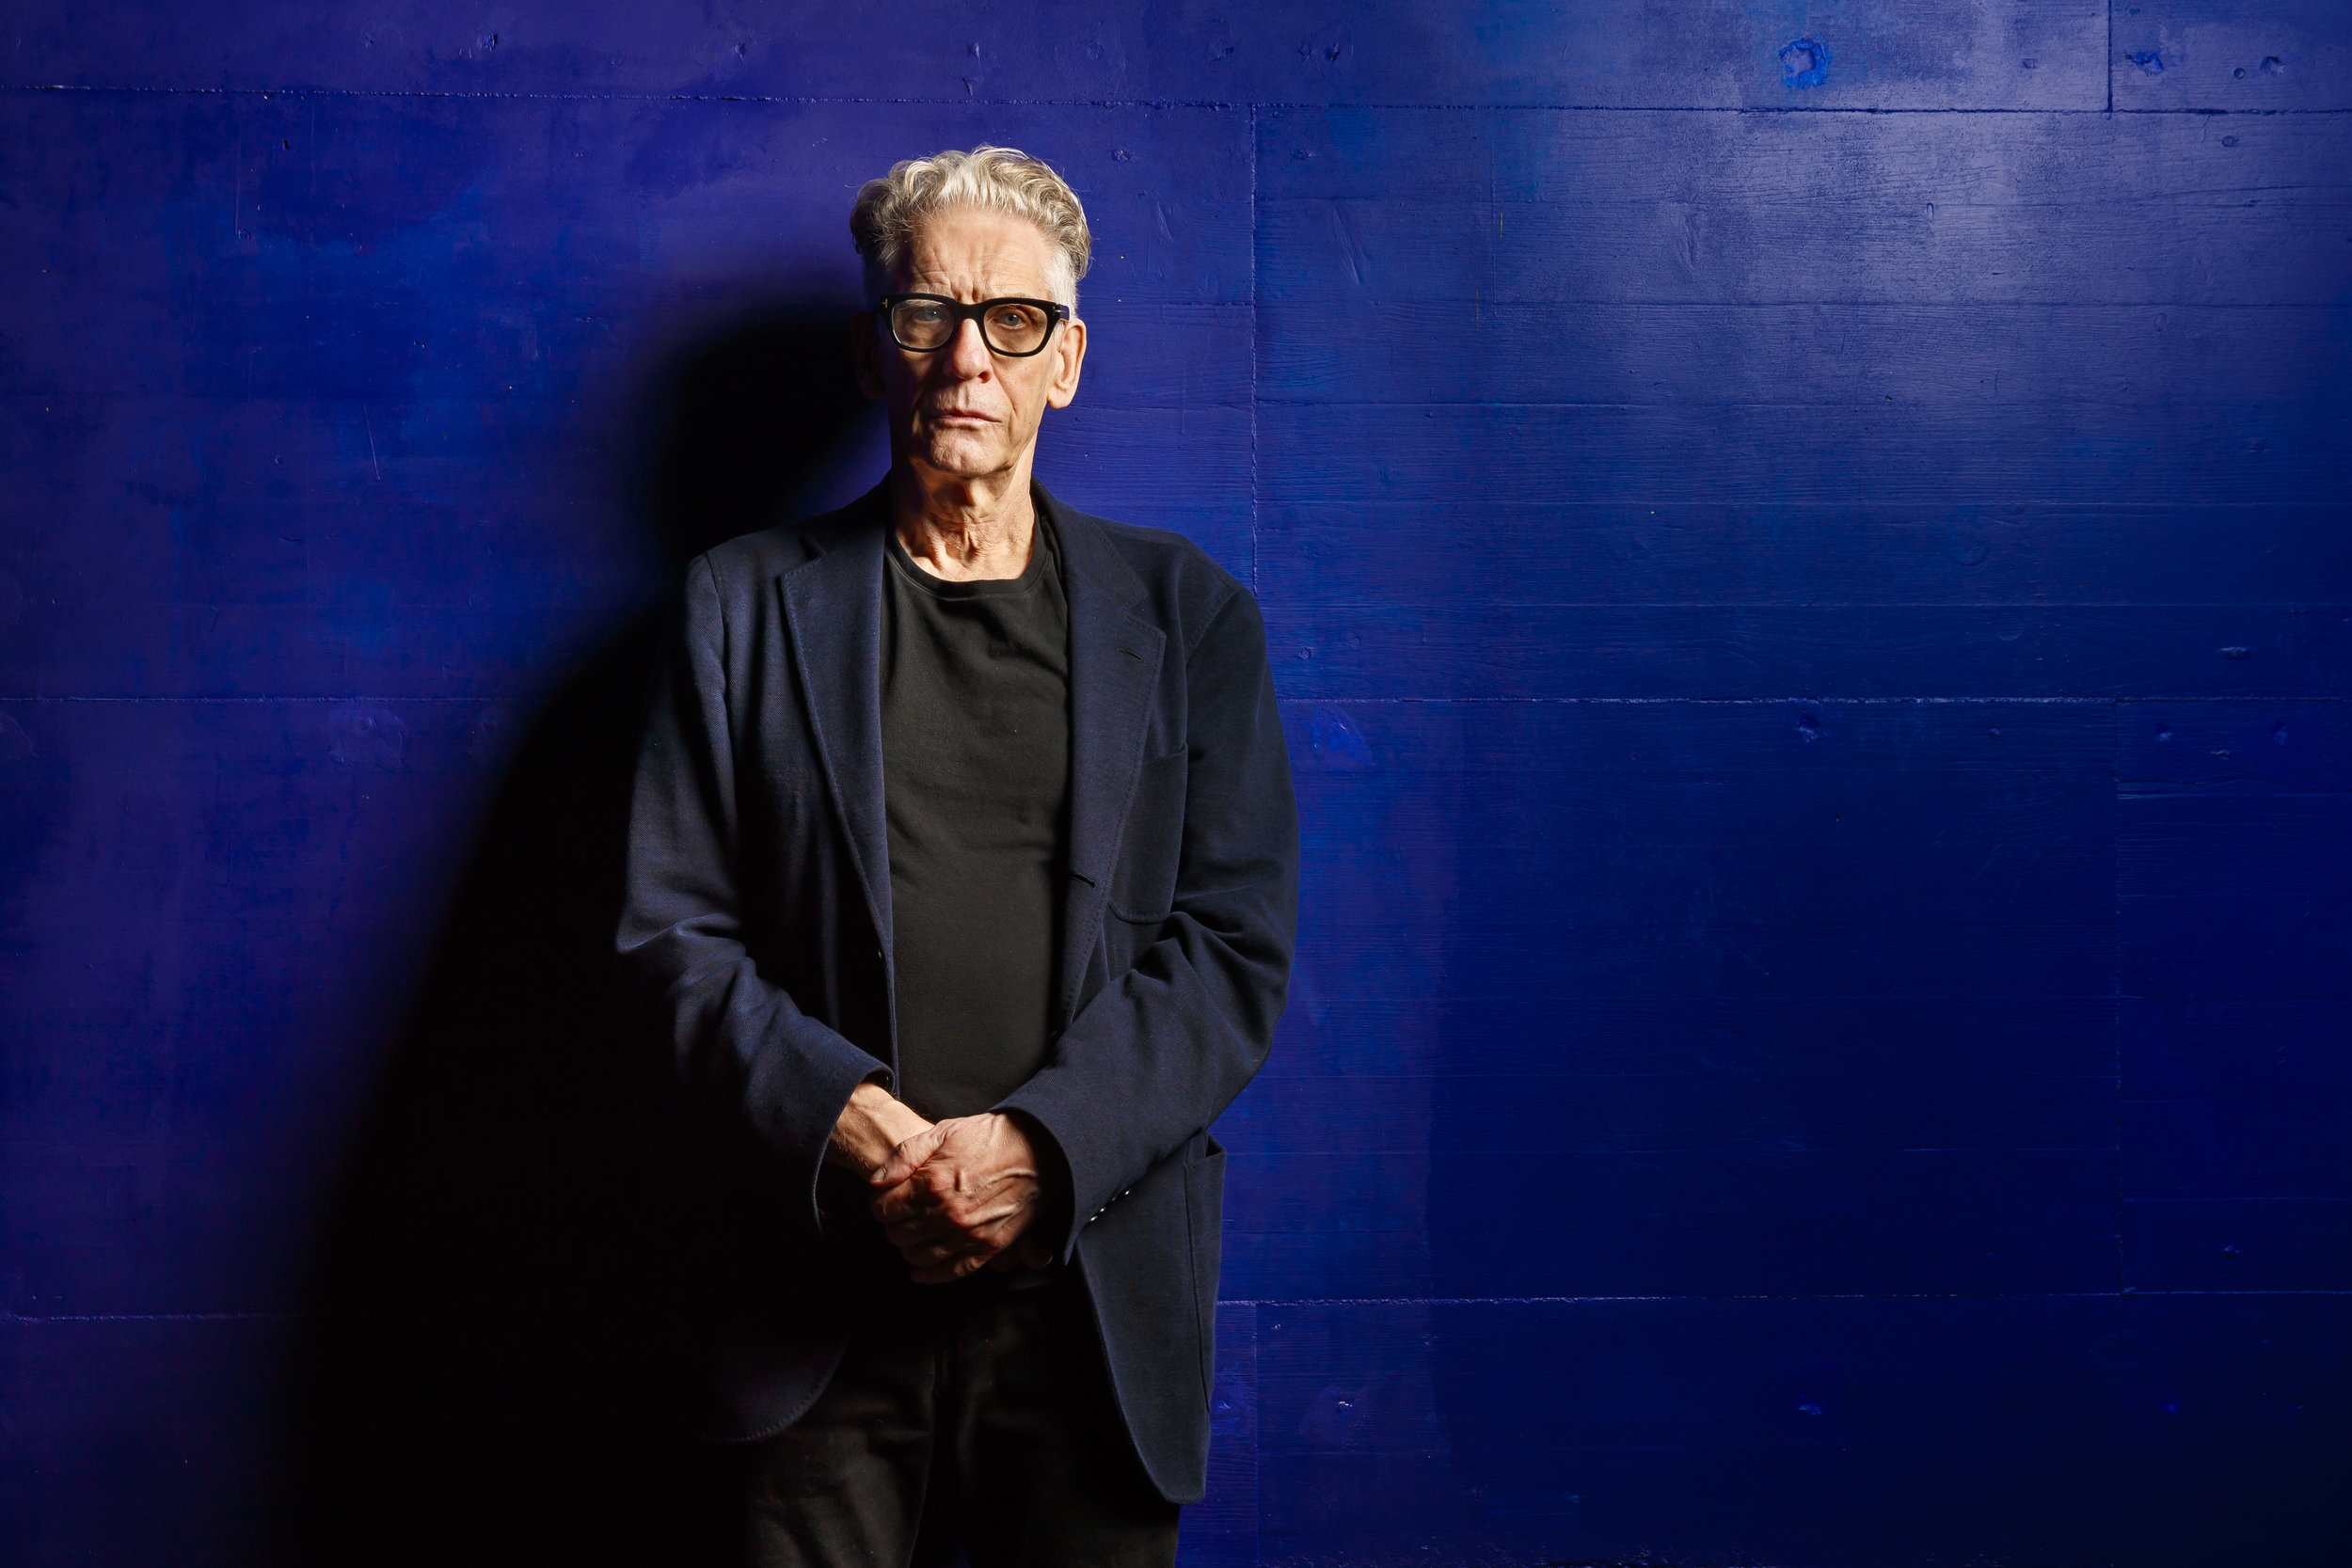 Canadian film director, screen writer and actor David Cronenberg poses for a portrait during the Neuchatel International Fantastic Film Festival (NIFFF) in Neuchatel, Switzerland, Sunday, July 8, 2018. (KEYSTONE/ Valentin Flauraud)